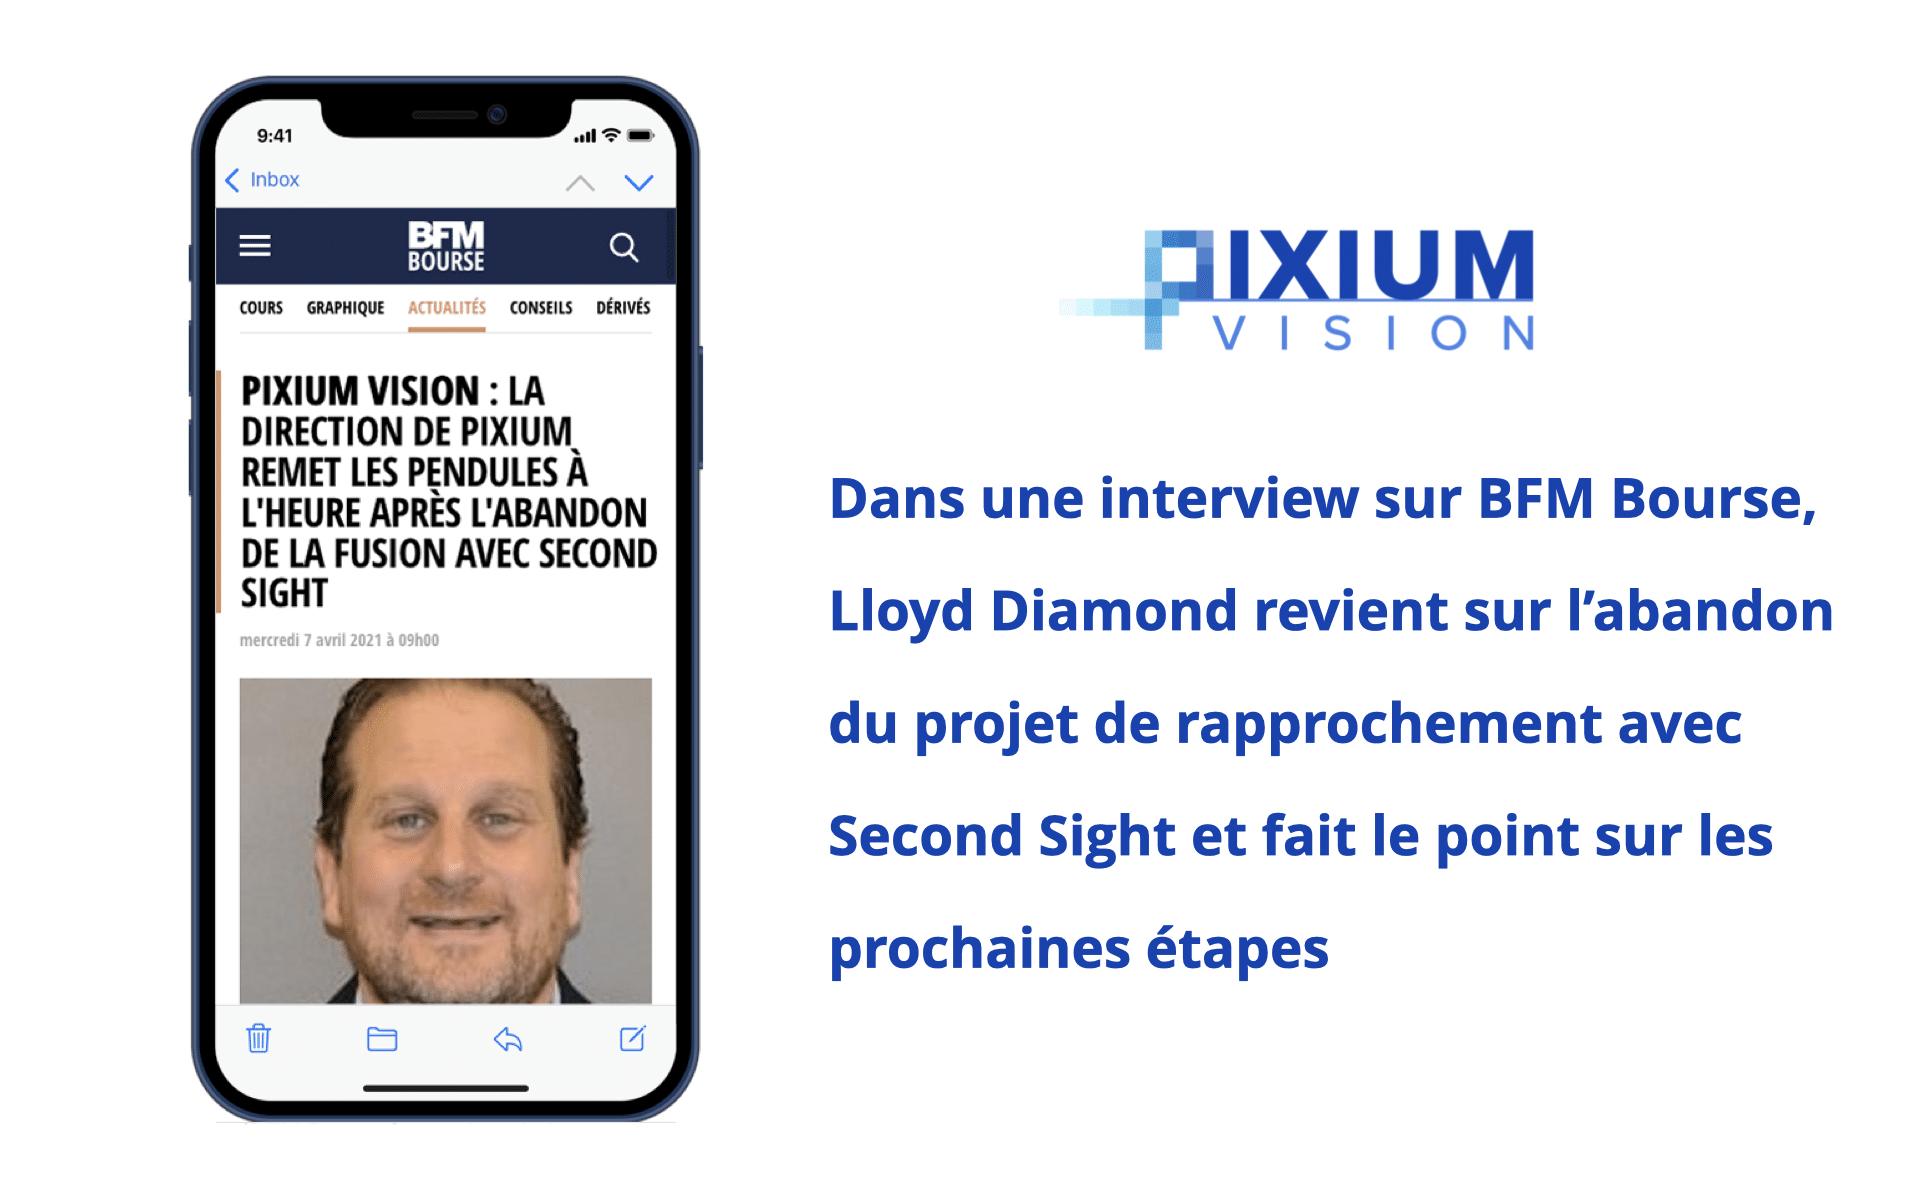 Lloyd Diamond interview sur BFM Bourse